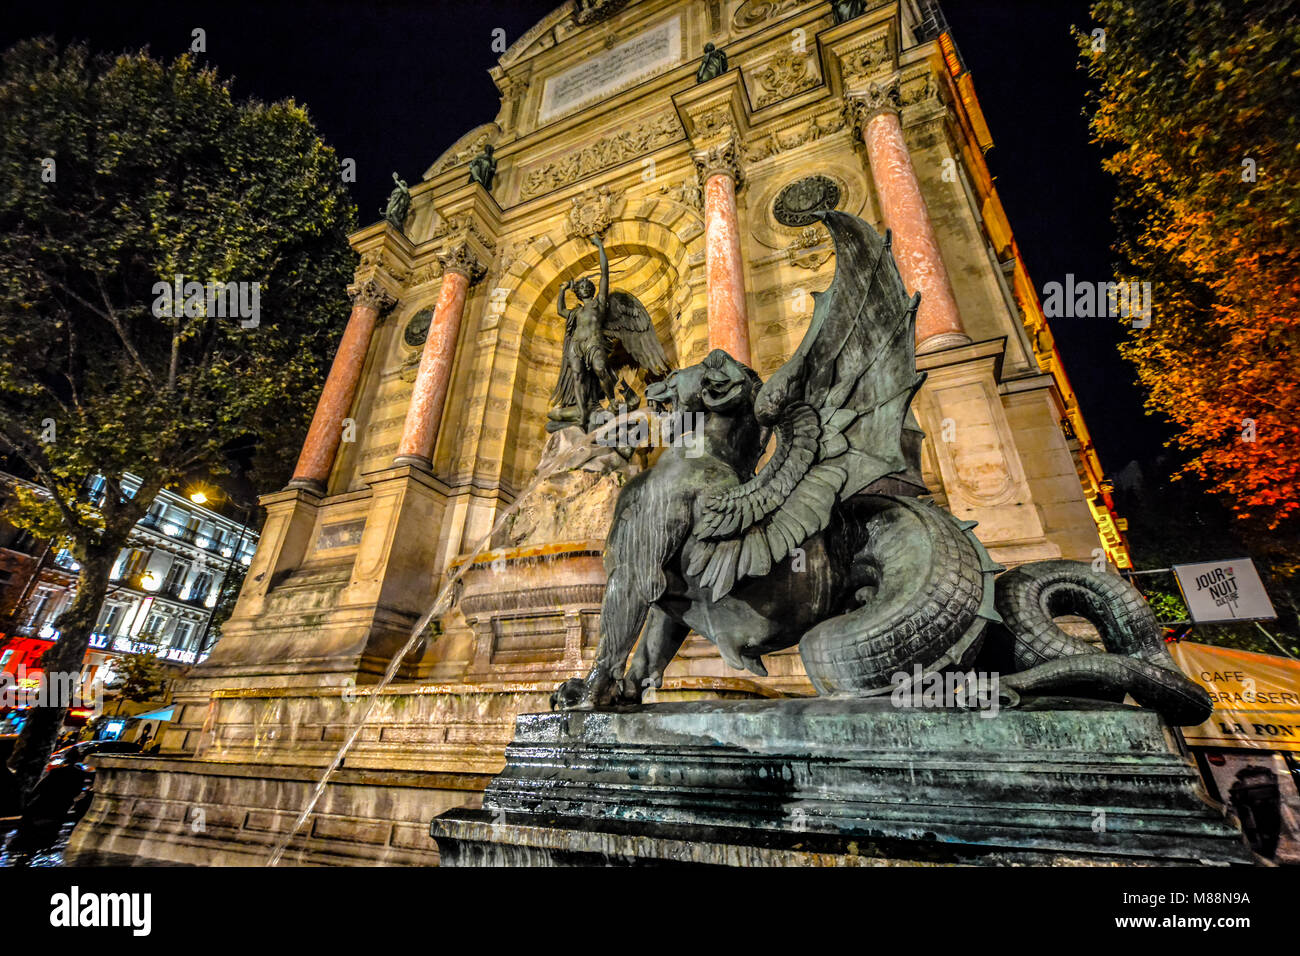 Place Saint-Michel in the 5th arrondissement, Paris France with the Fontaine Saint-Michel fountain and winged dragon - Stock Image